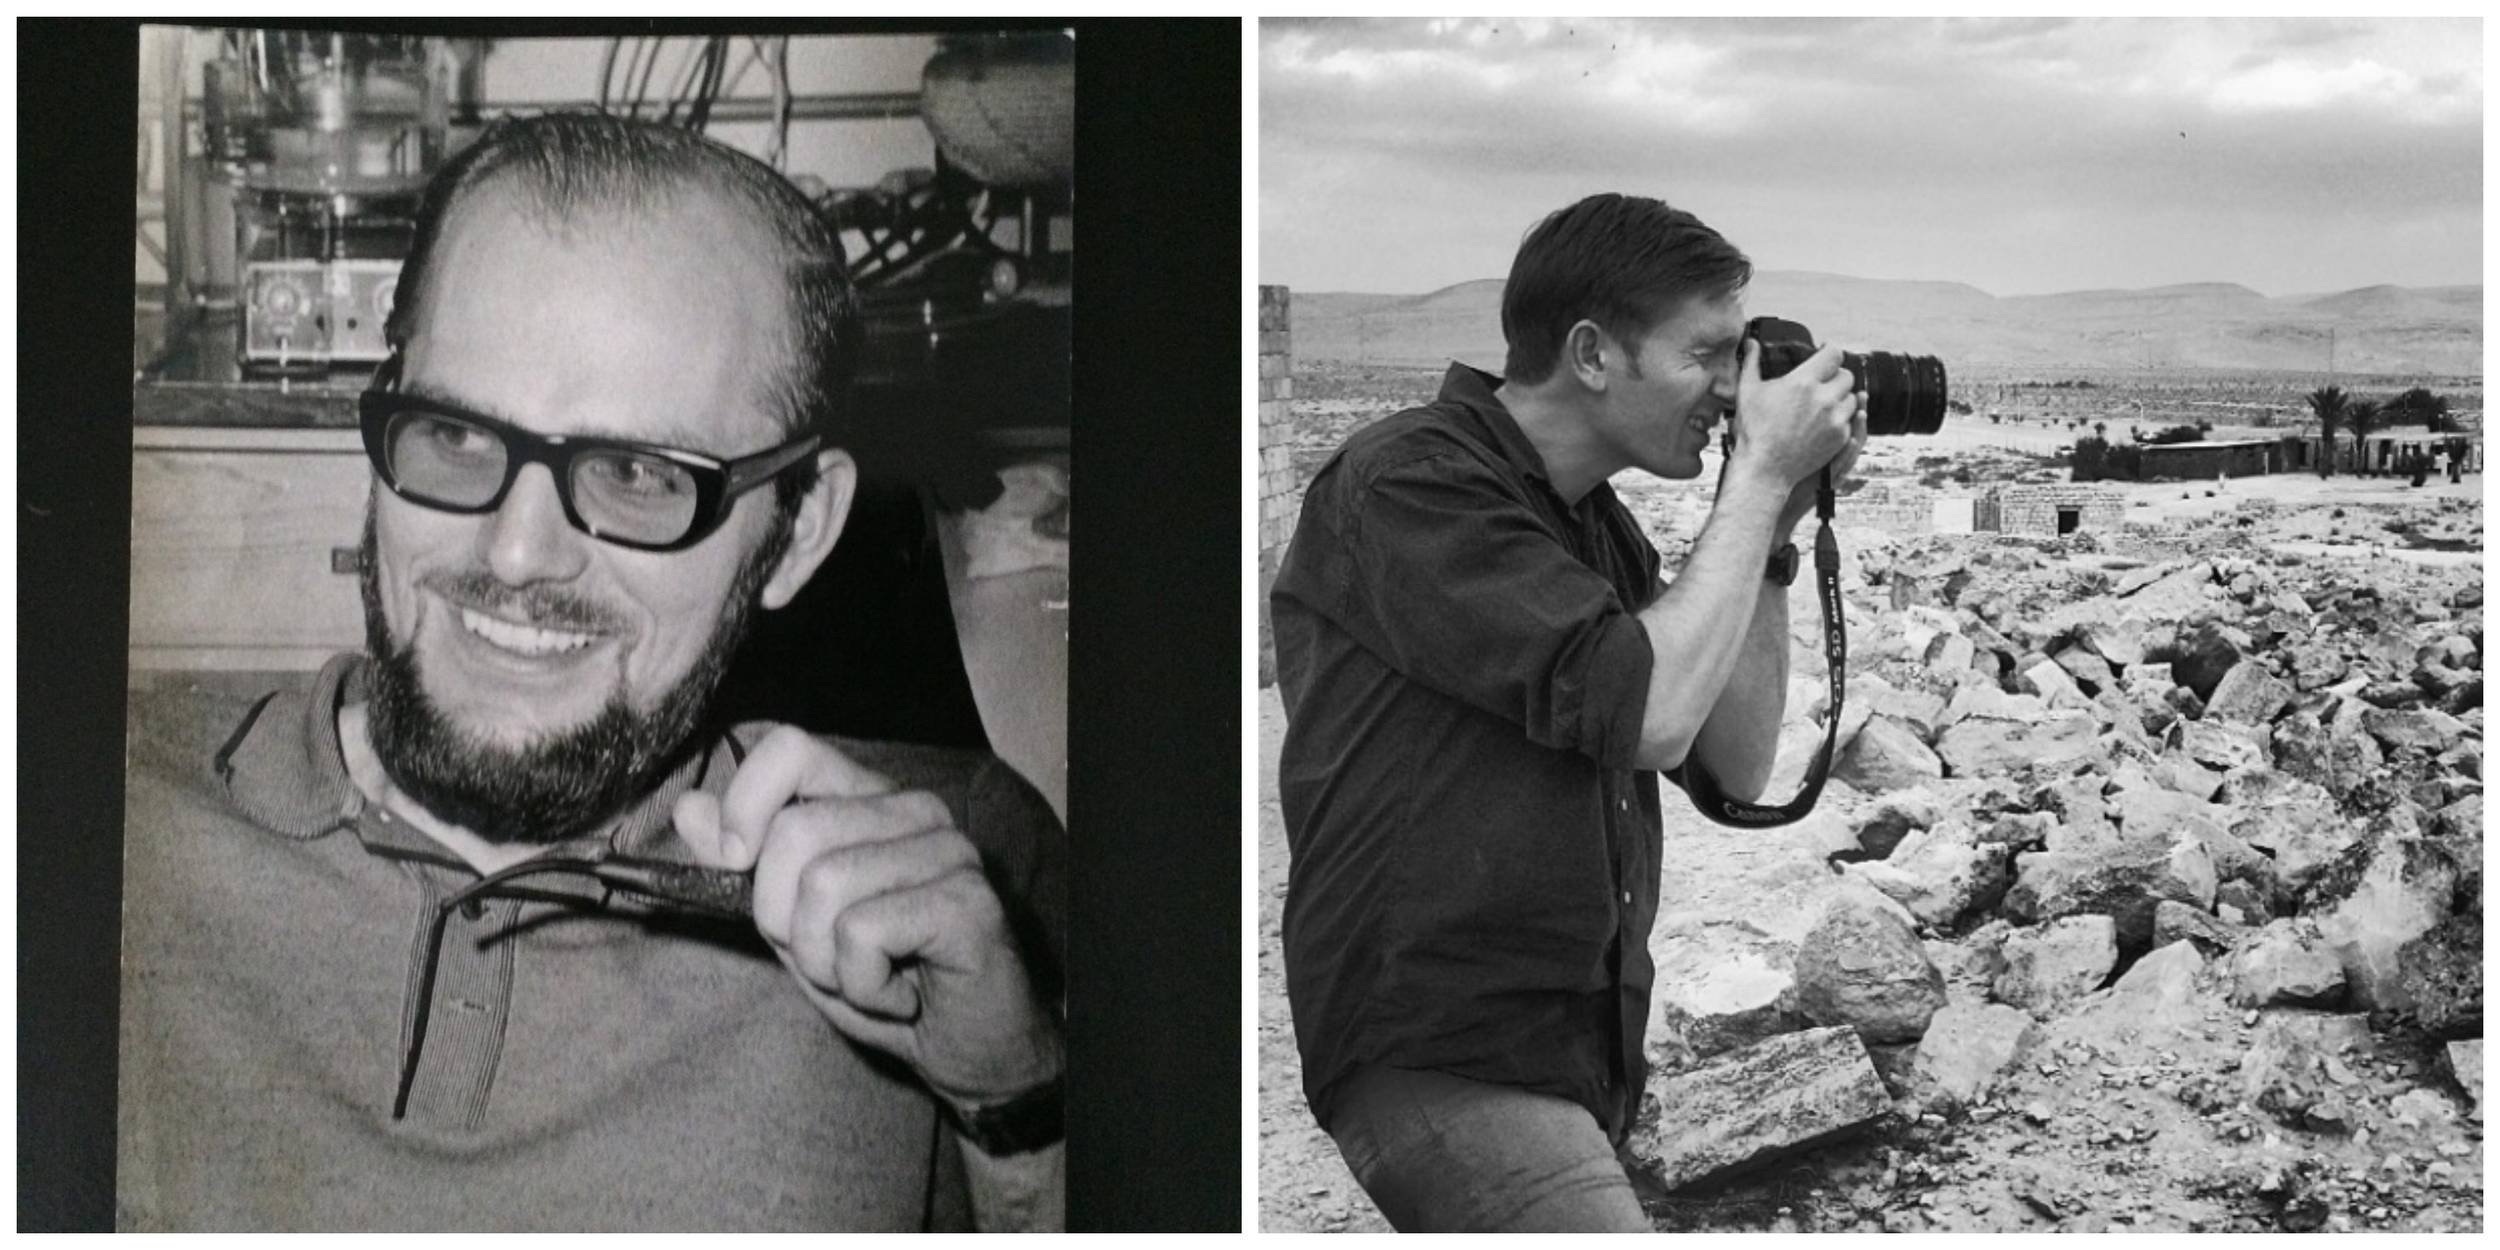 Horst Witzke, circa 1966, studying in West Germany.           Adrian Witzke, 2014, filming In Israel.